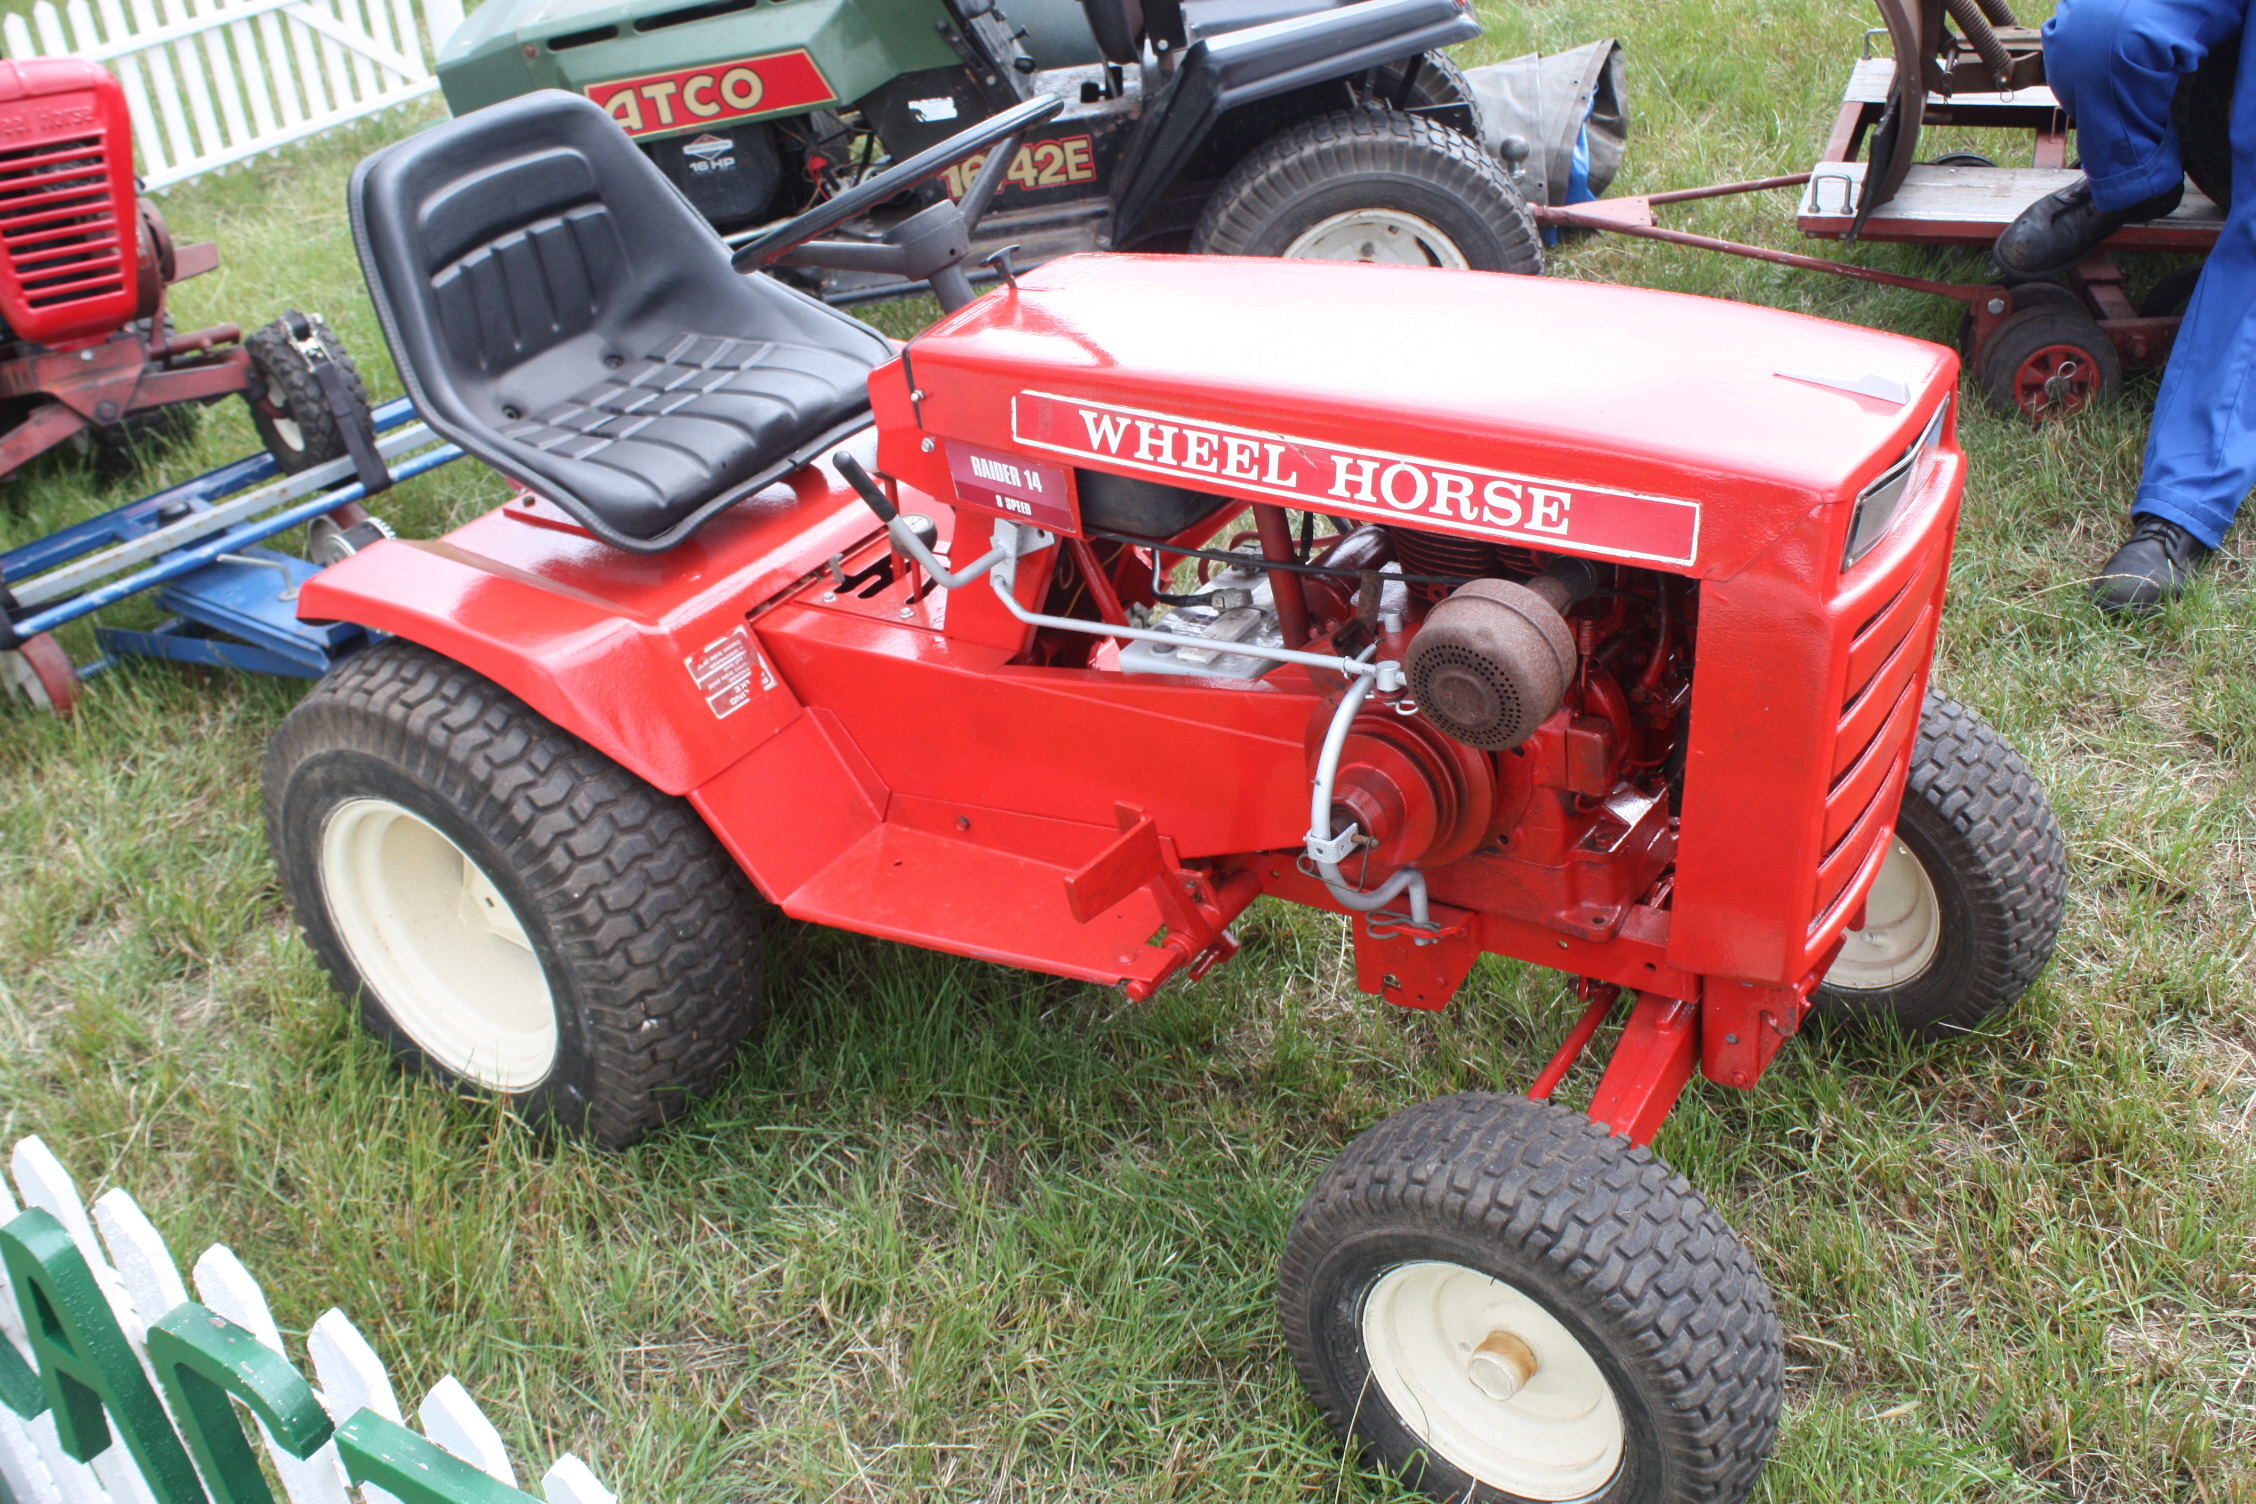 briggs and stratton 7.5 hp engine manual